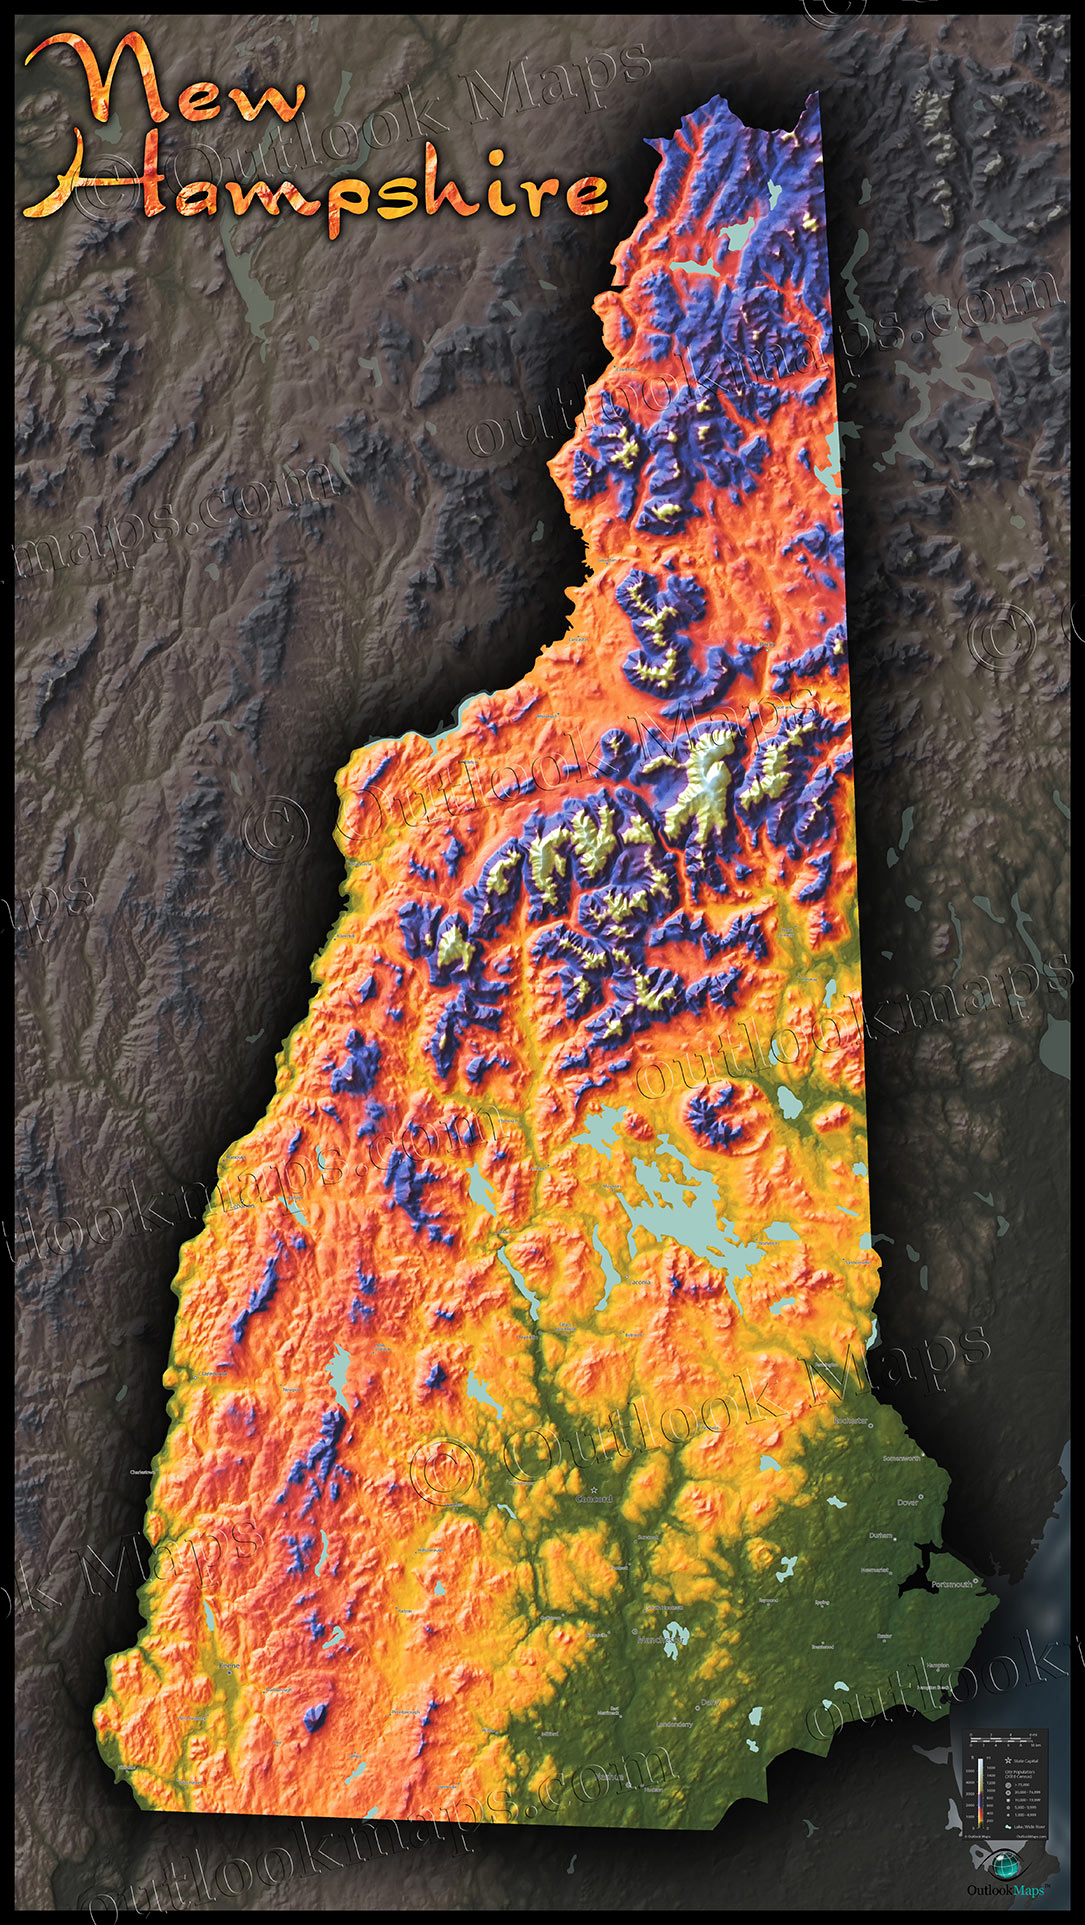 Topographic New York Wall Map Schoolhouse Electric GeoInstitut - Topographic map of western us